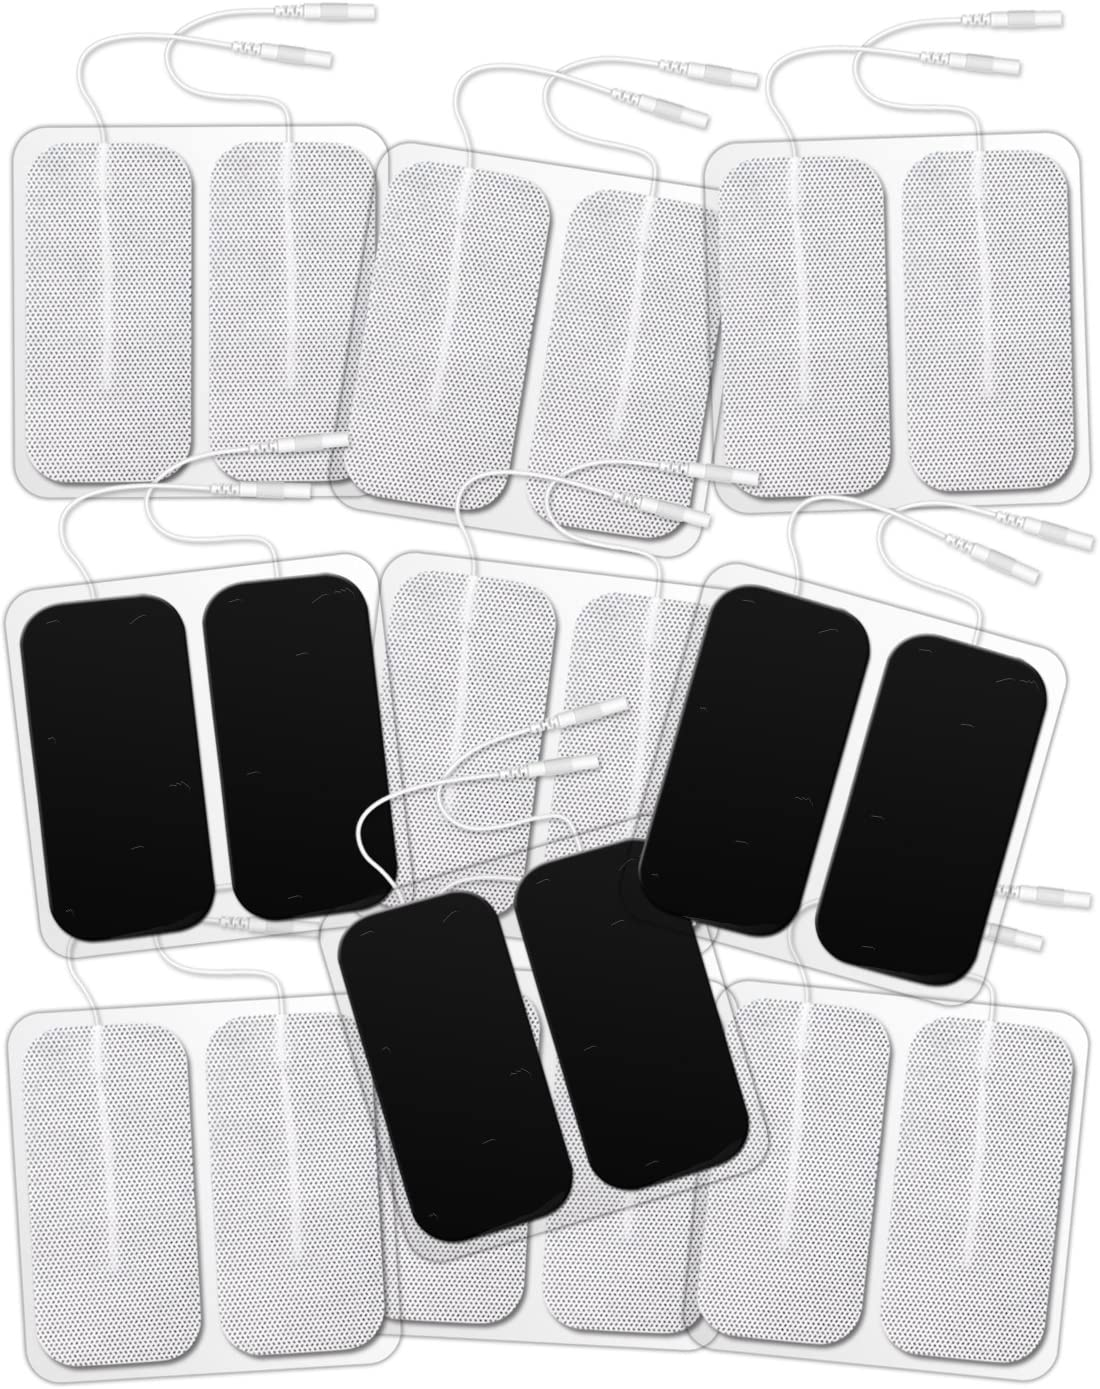 Syrtenty TENS Unit Pads 2 Pack of 20